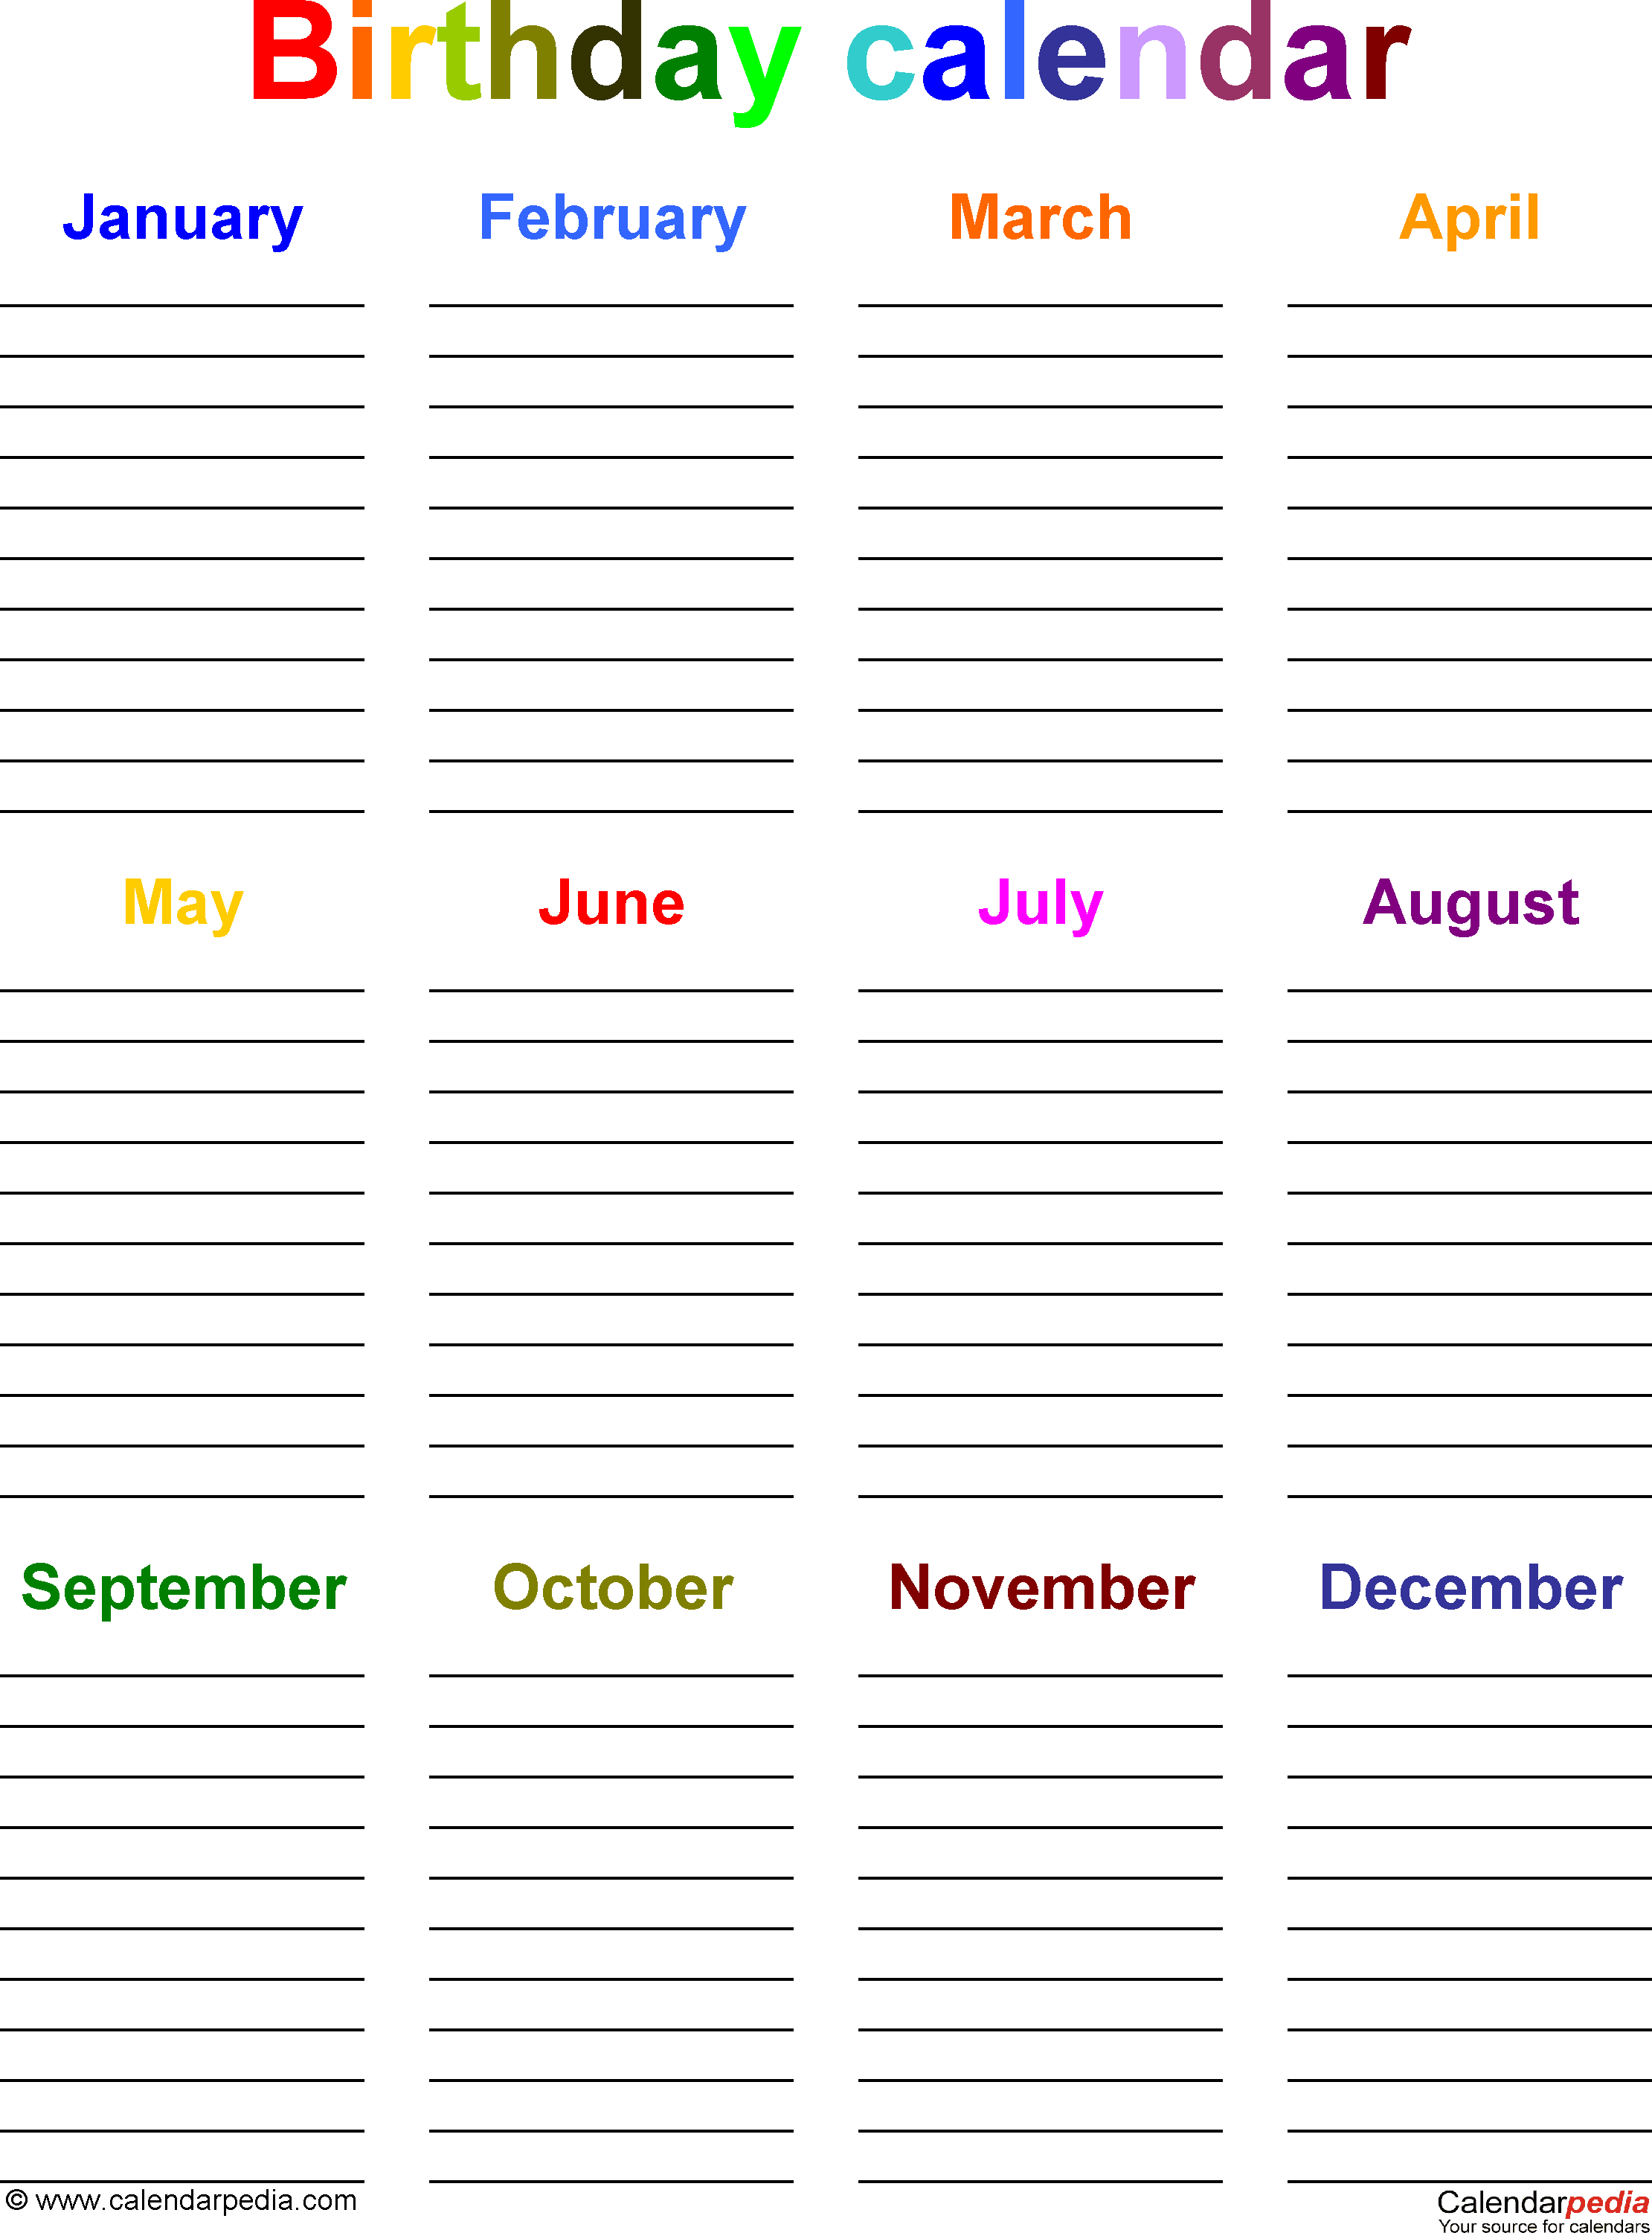 Birthday Calendars 7 Free Printable Excel Templates